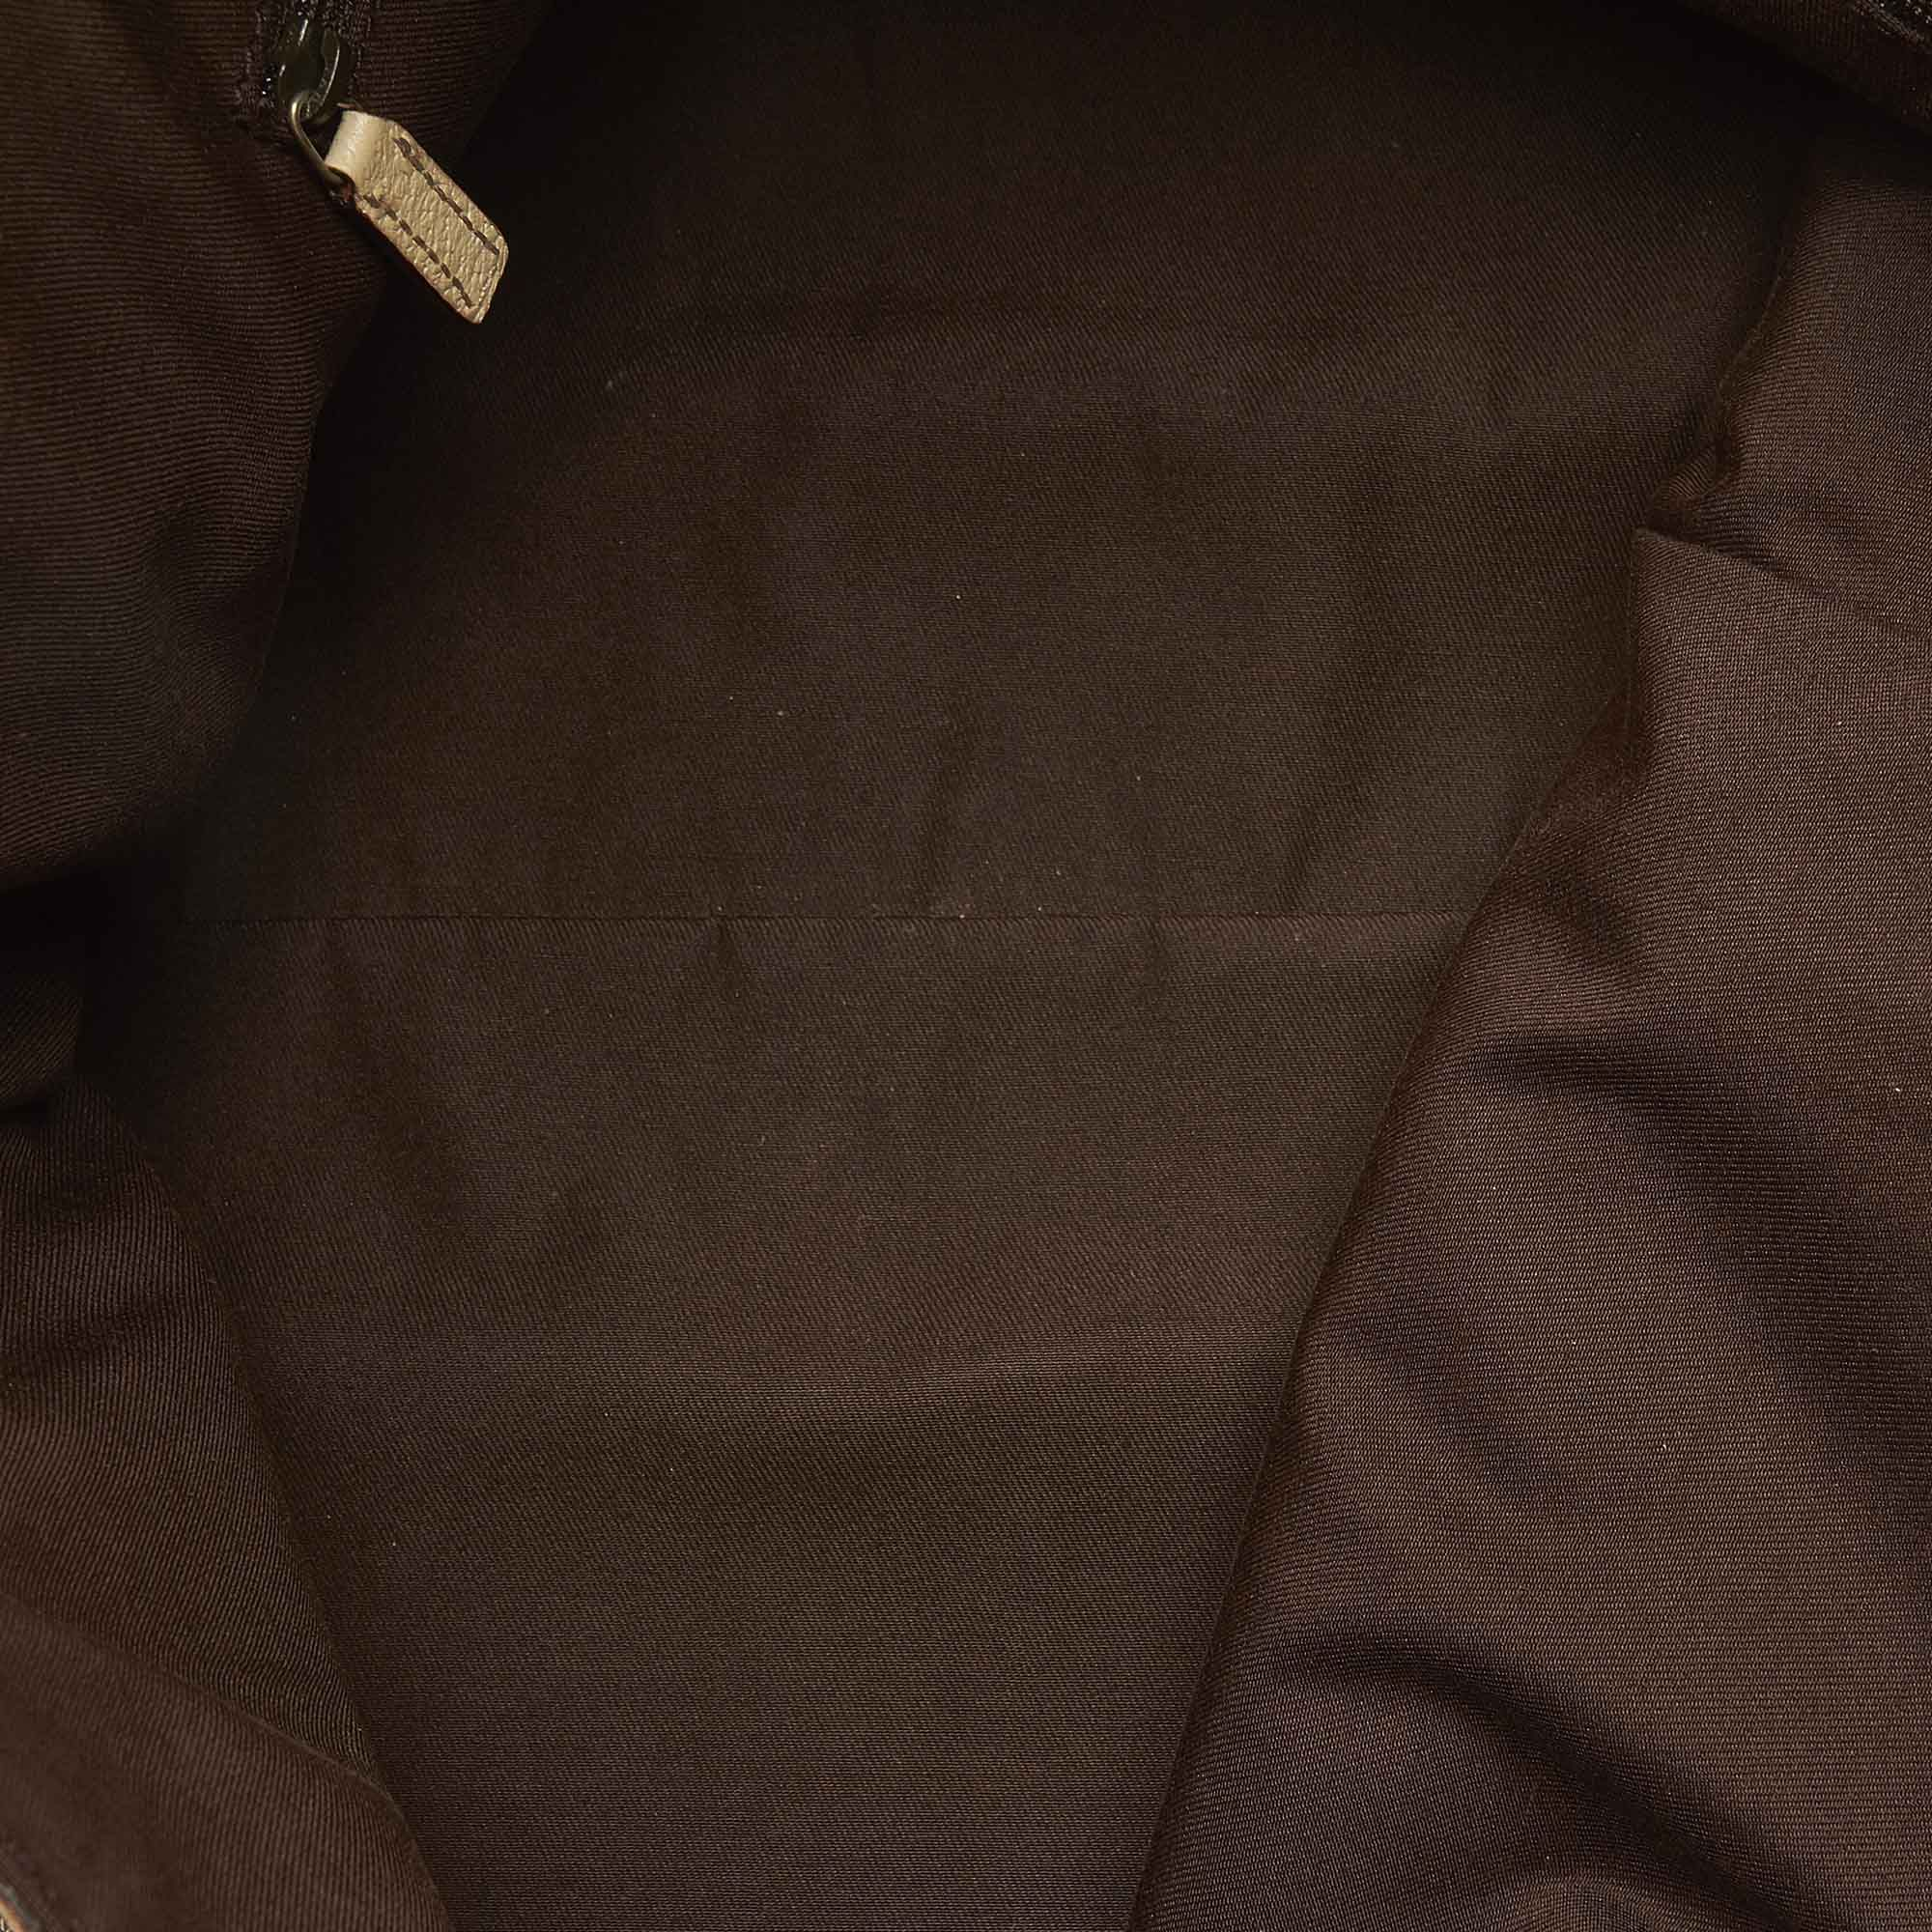 Vintage Gucci GG Canvas Abbey D- Ring Tote Bag Brown